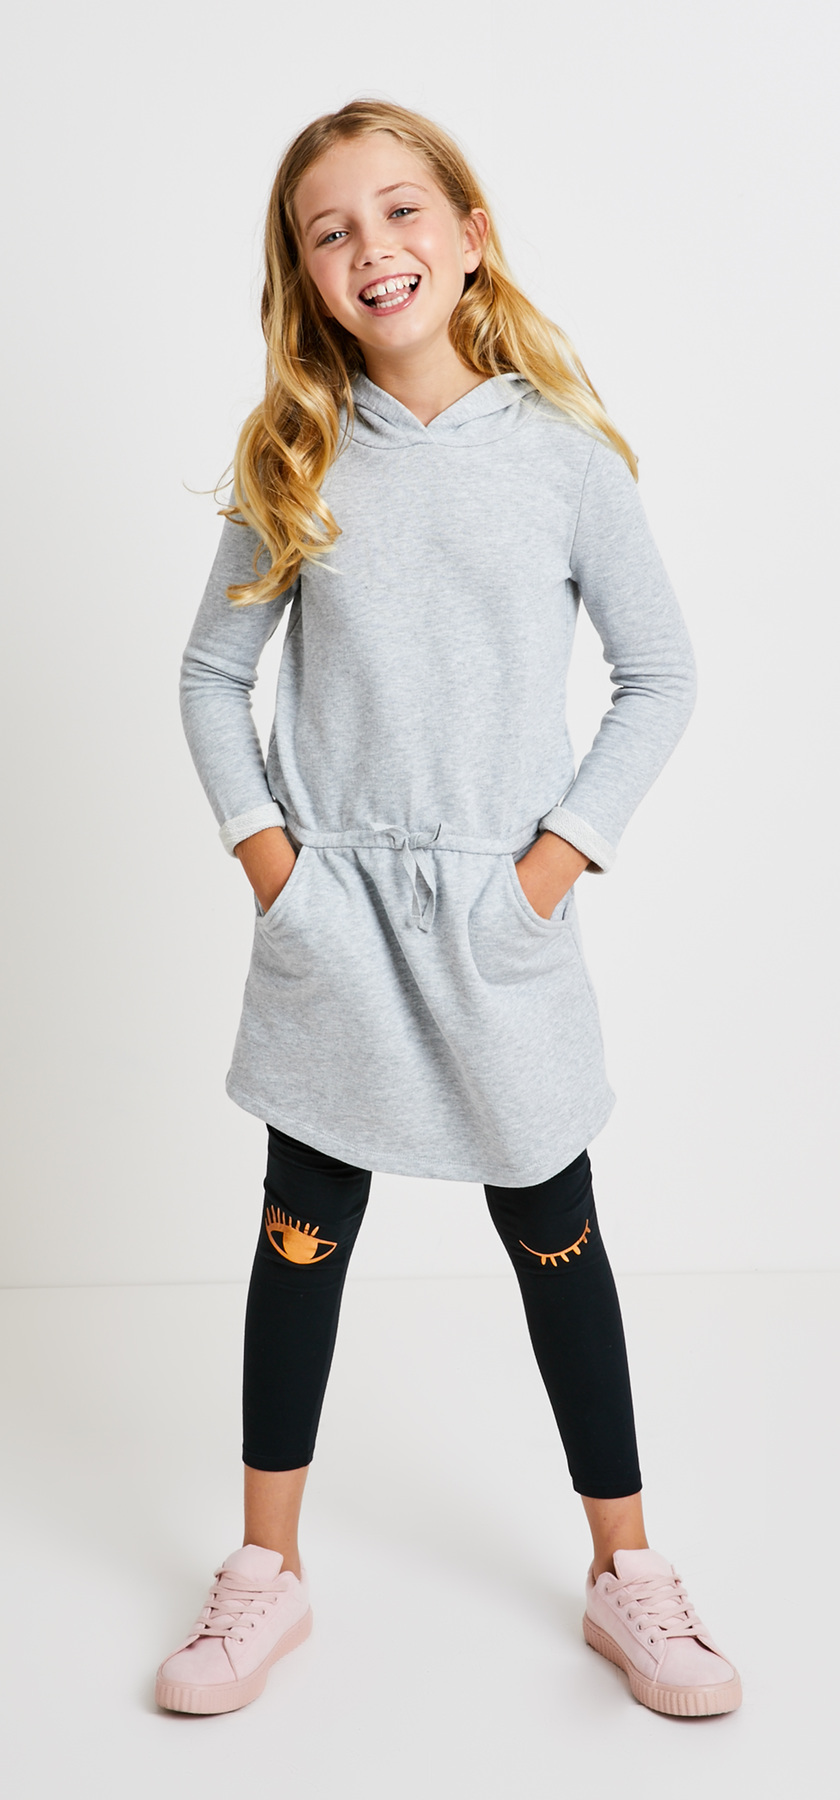 f00453dd67 Sweatshirt Dress Wink Graphic Outfit - FabKids